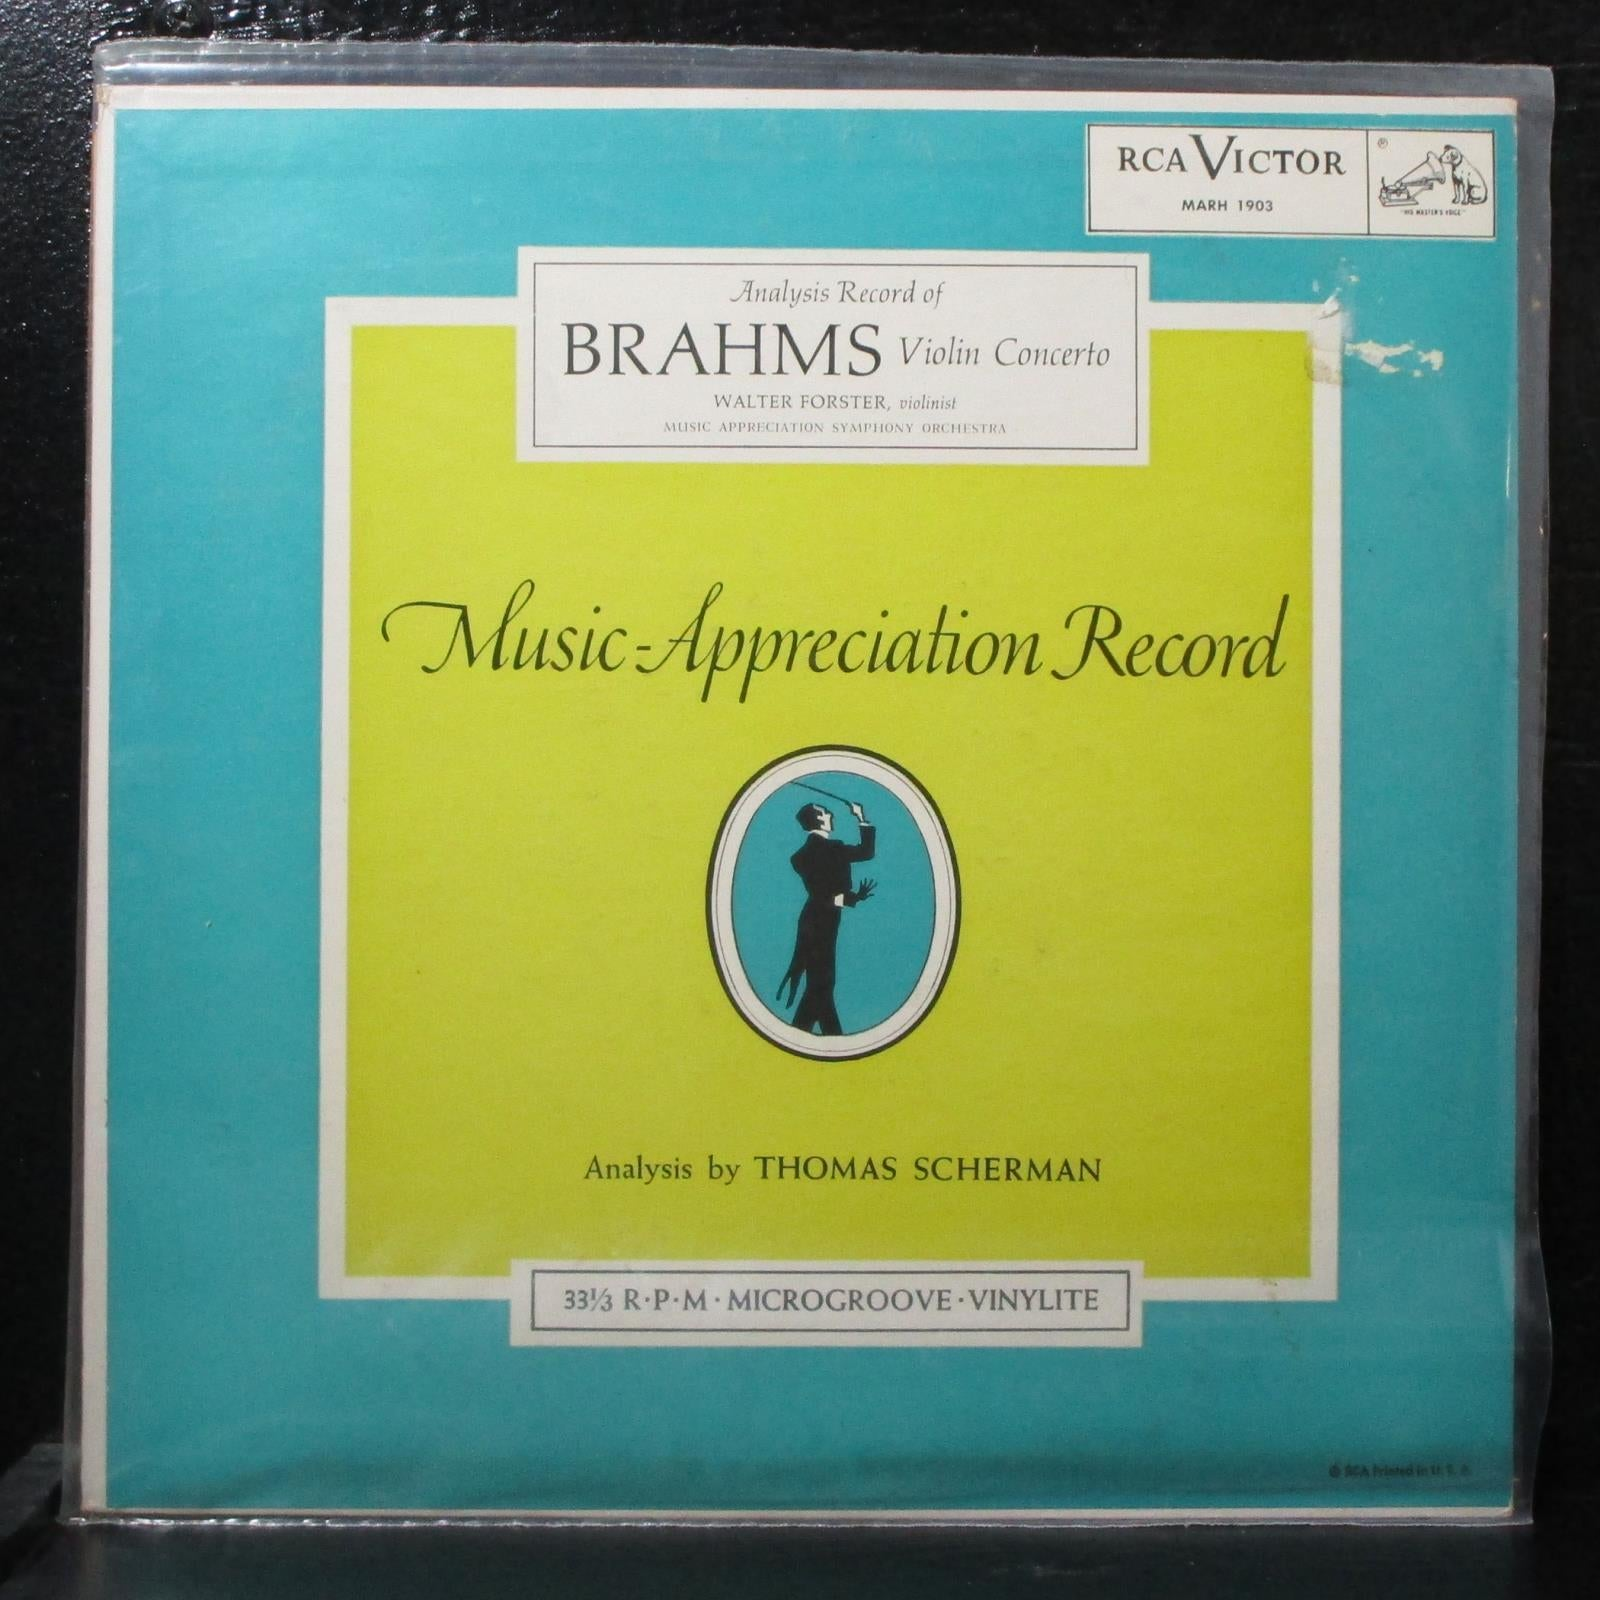 "Forster - Analysis Record of Brahms Violin Concerto VG+ Mono 10"" LP MARH 1903"